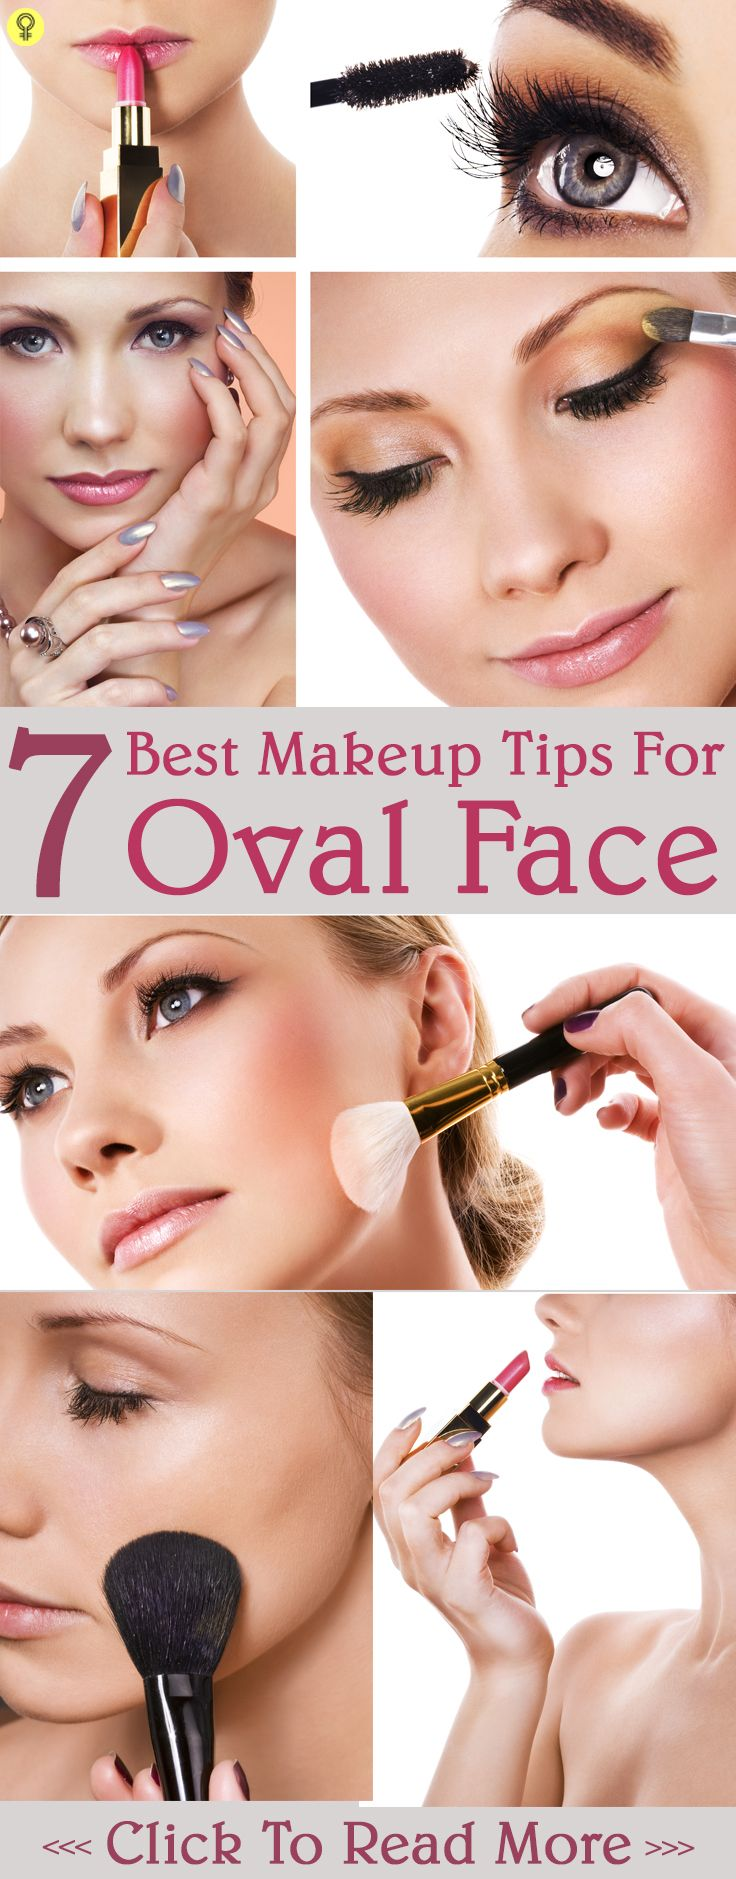 10 Best Makeup Tips For Oval Face  Oval face makeup, Best makeup